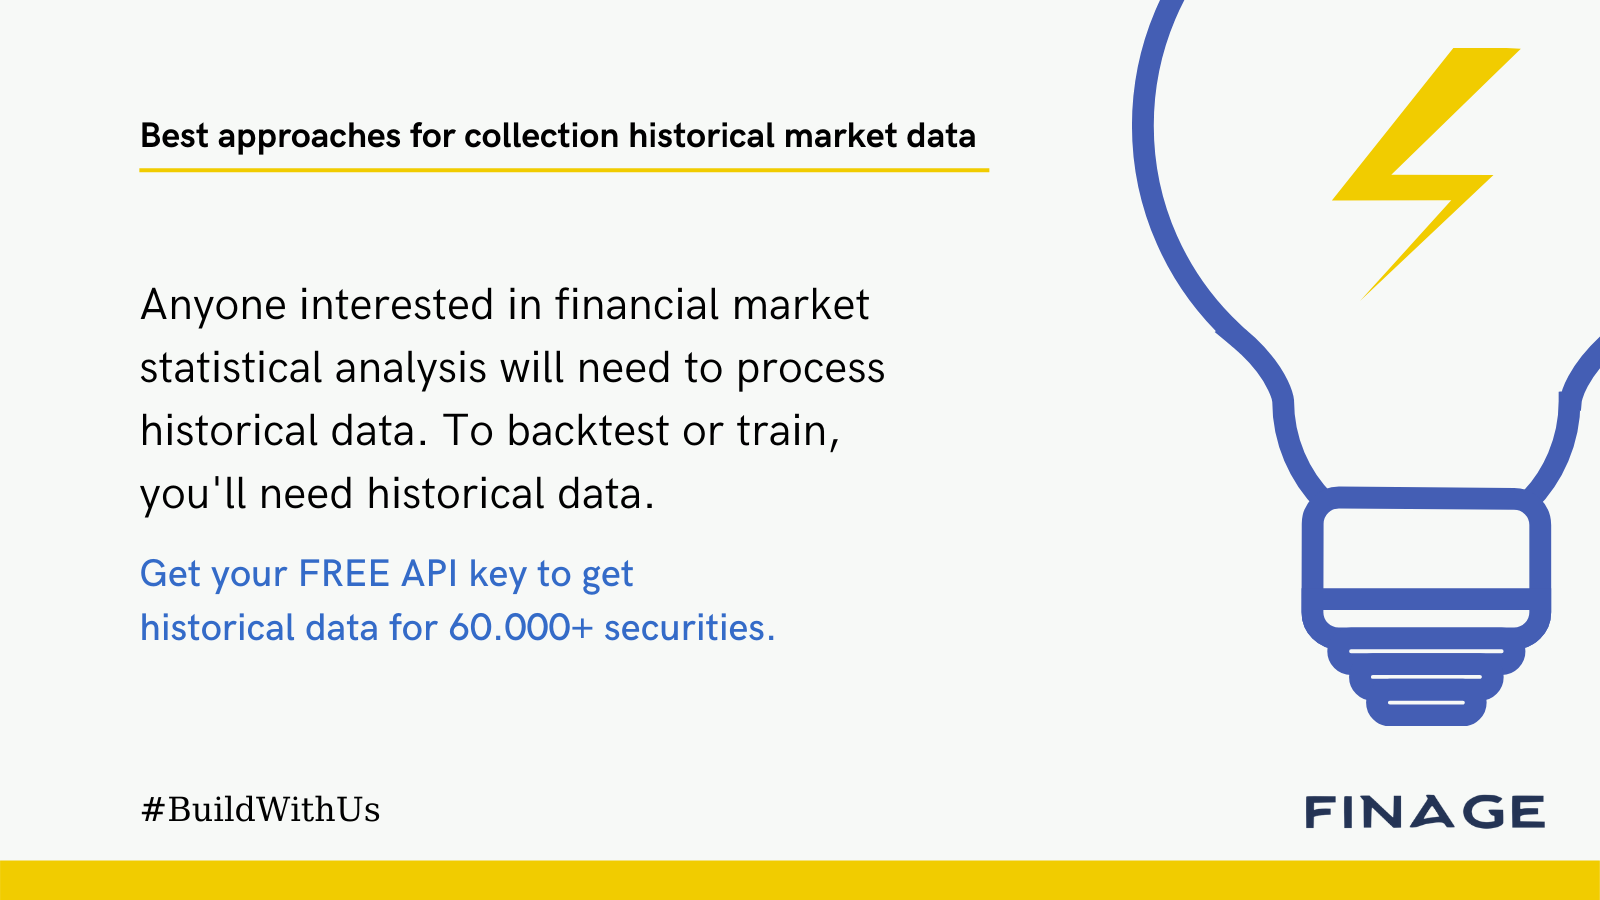 Best approaches for collection historical market data